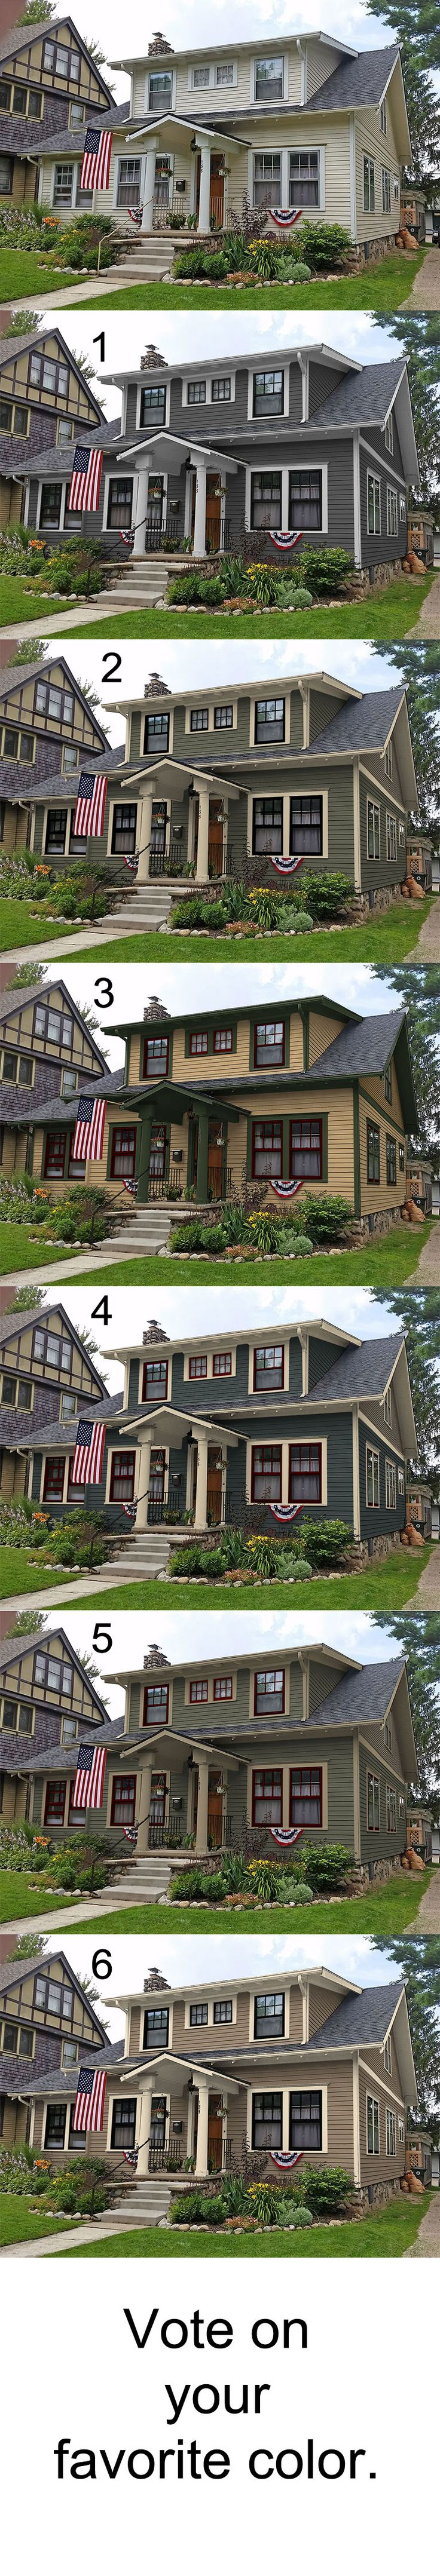 Portfolio Of Historic House Colors. Exterior Paint Colors For Old Homes  Showing Before And After Photos.